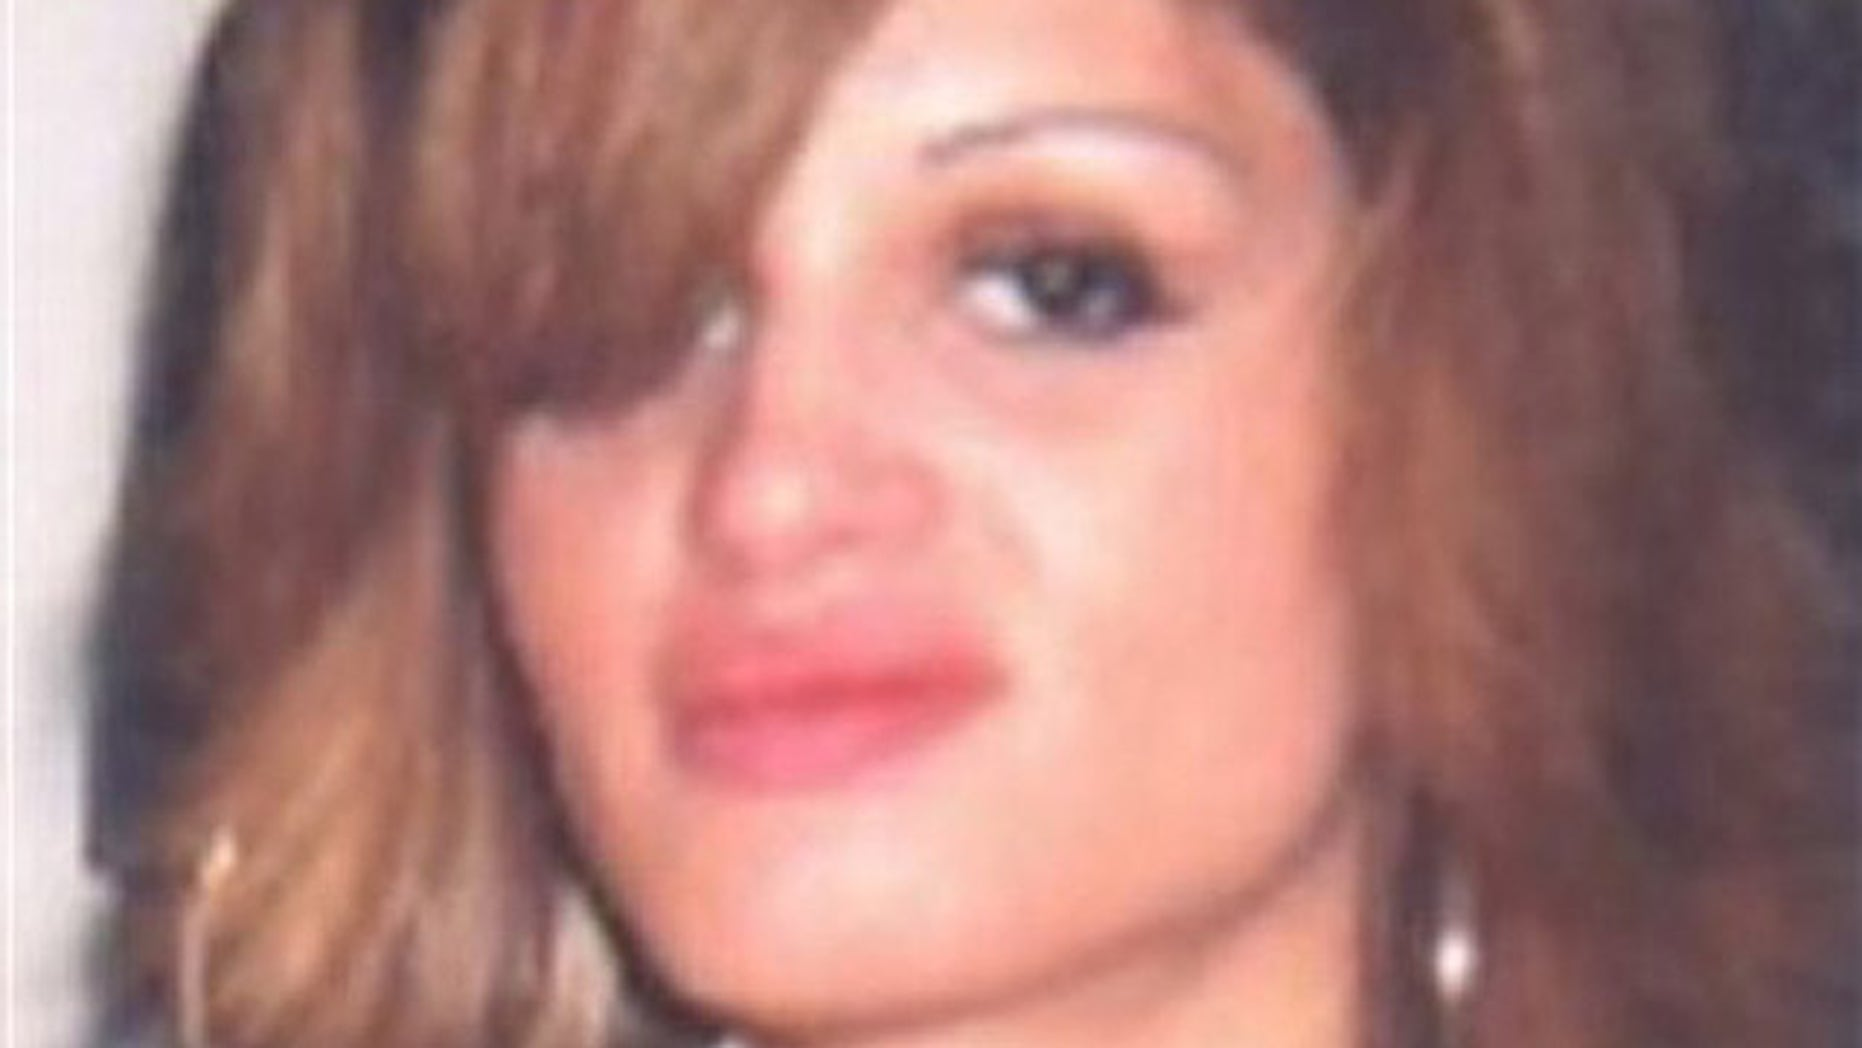 A judge ordered Suffolk County police to release the 911 tapes made by Shannan Gilbert the day she went missing.